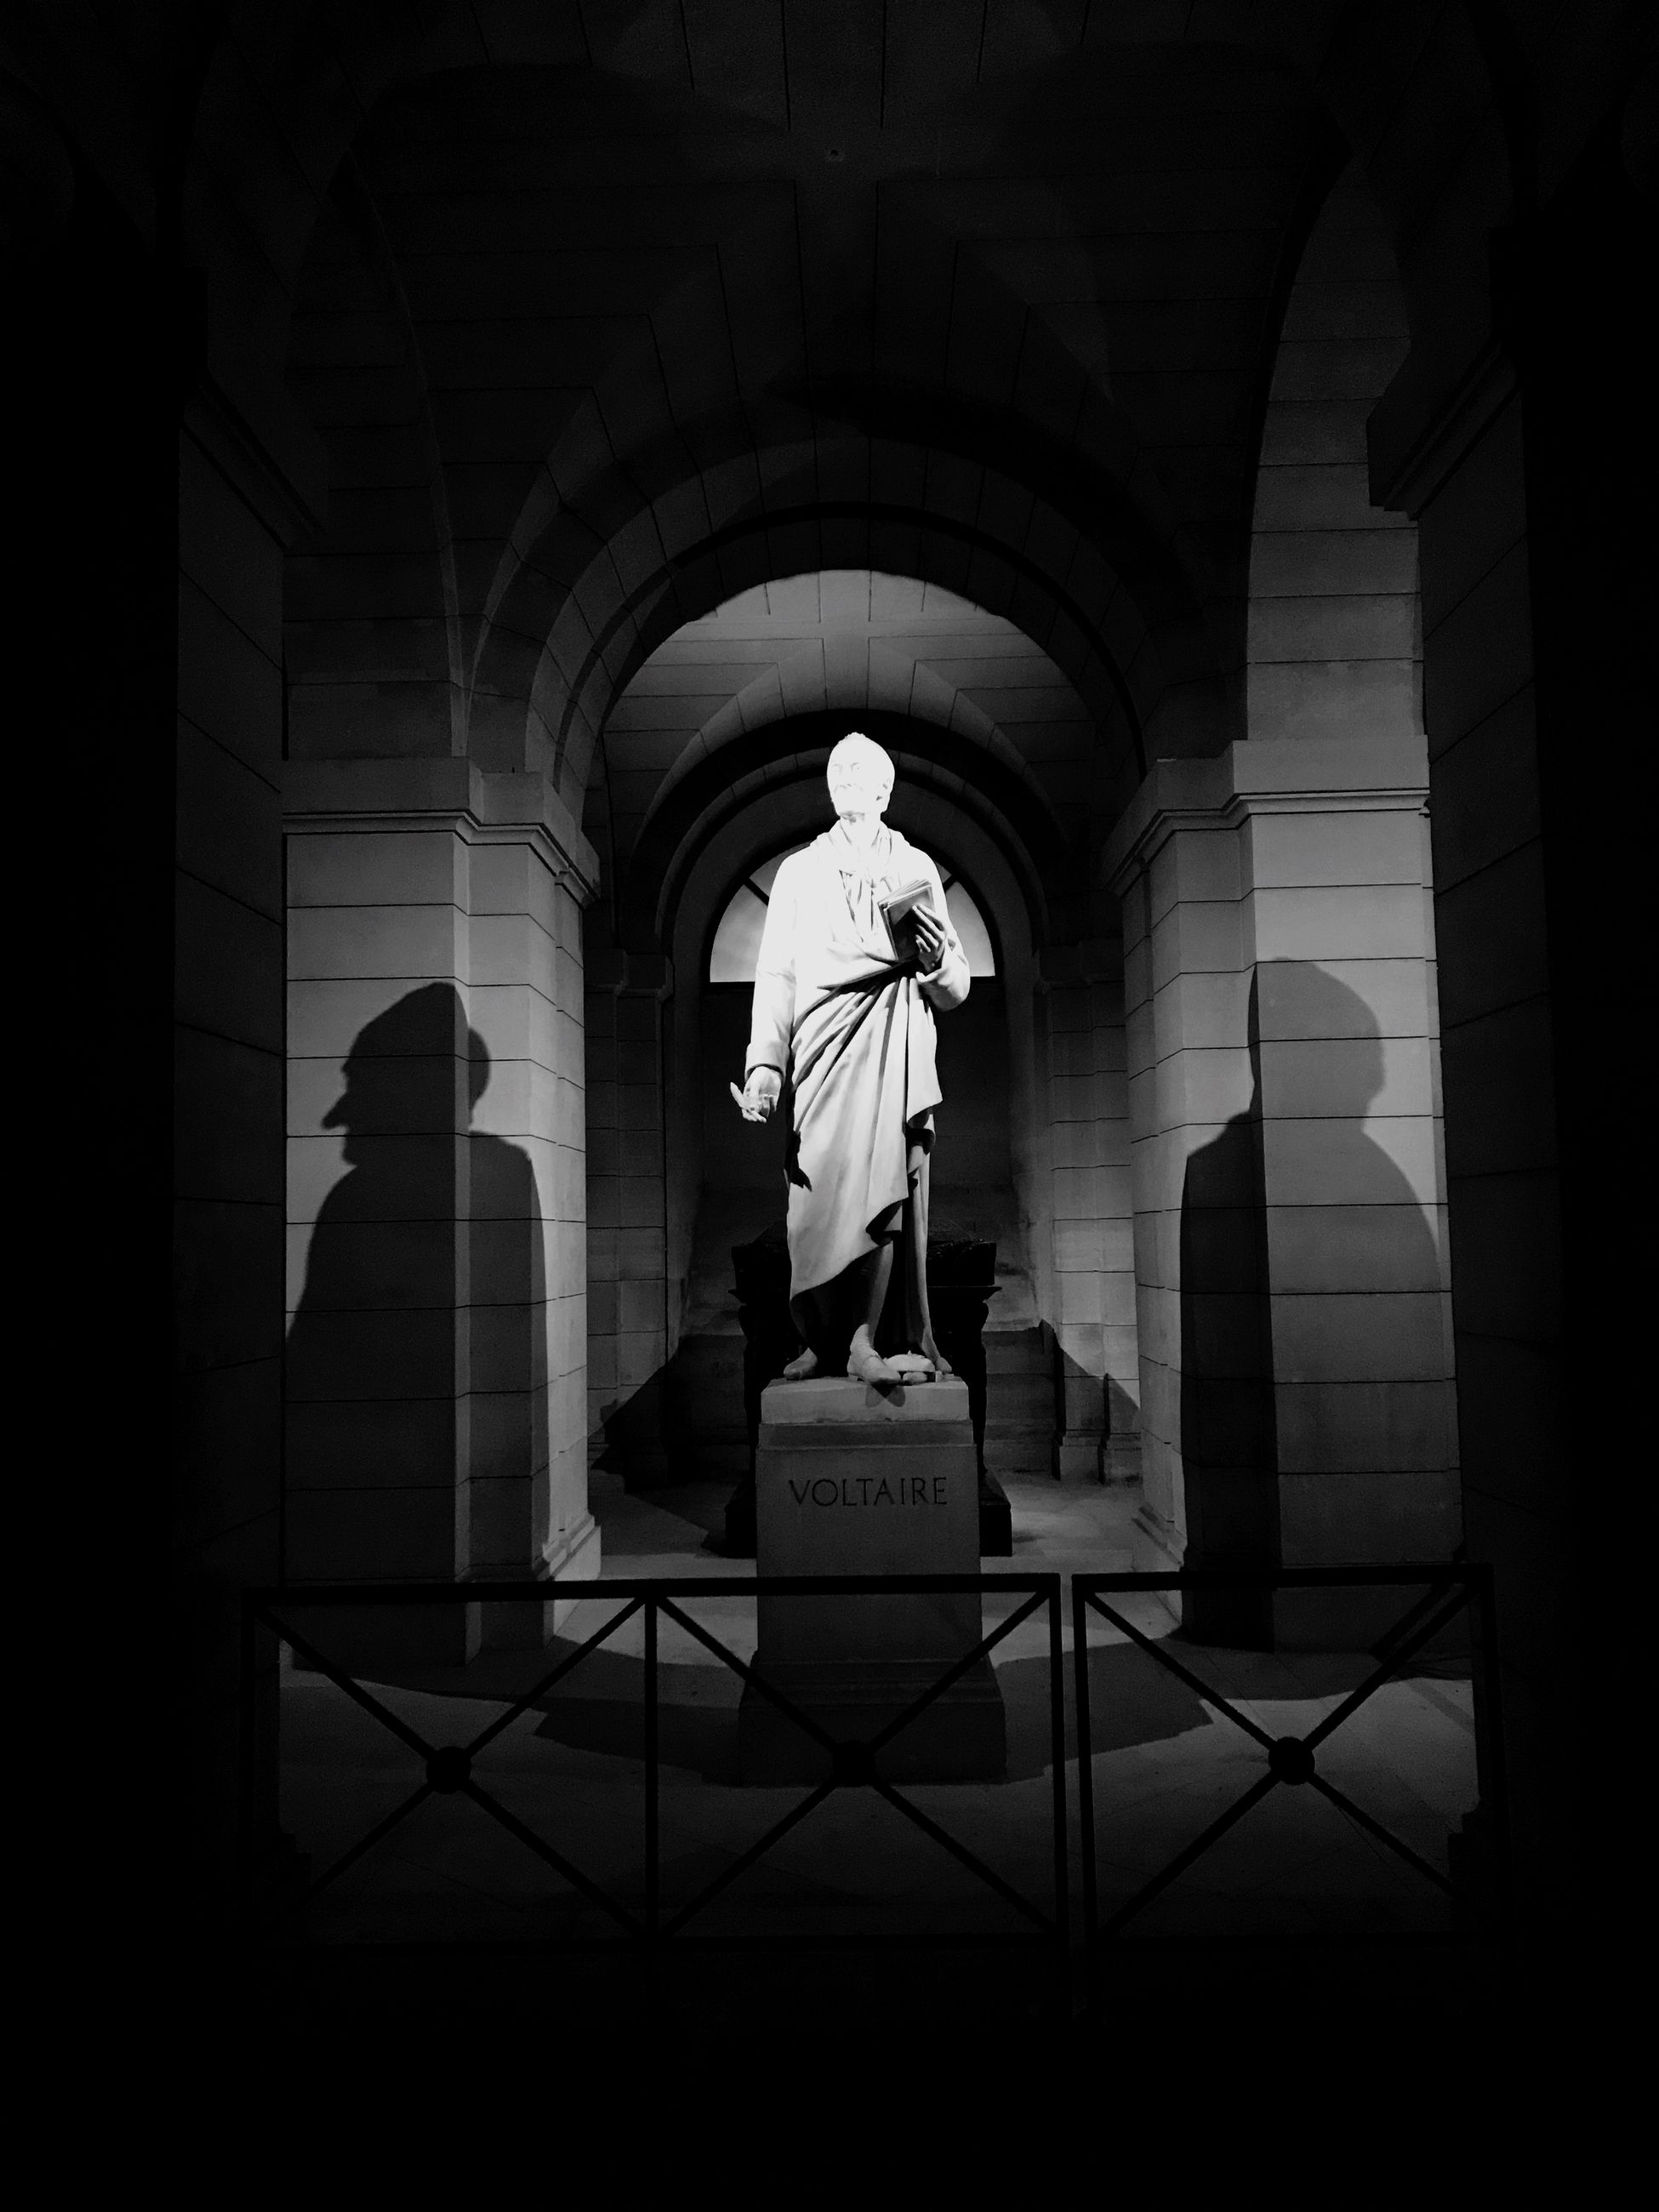 statue, human representation, real people, arch, built structure, architectural column, history, architecture, spirituality, sculpture, standing, full length, travel destinations, men, day, indoors, people